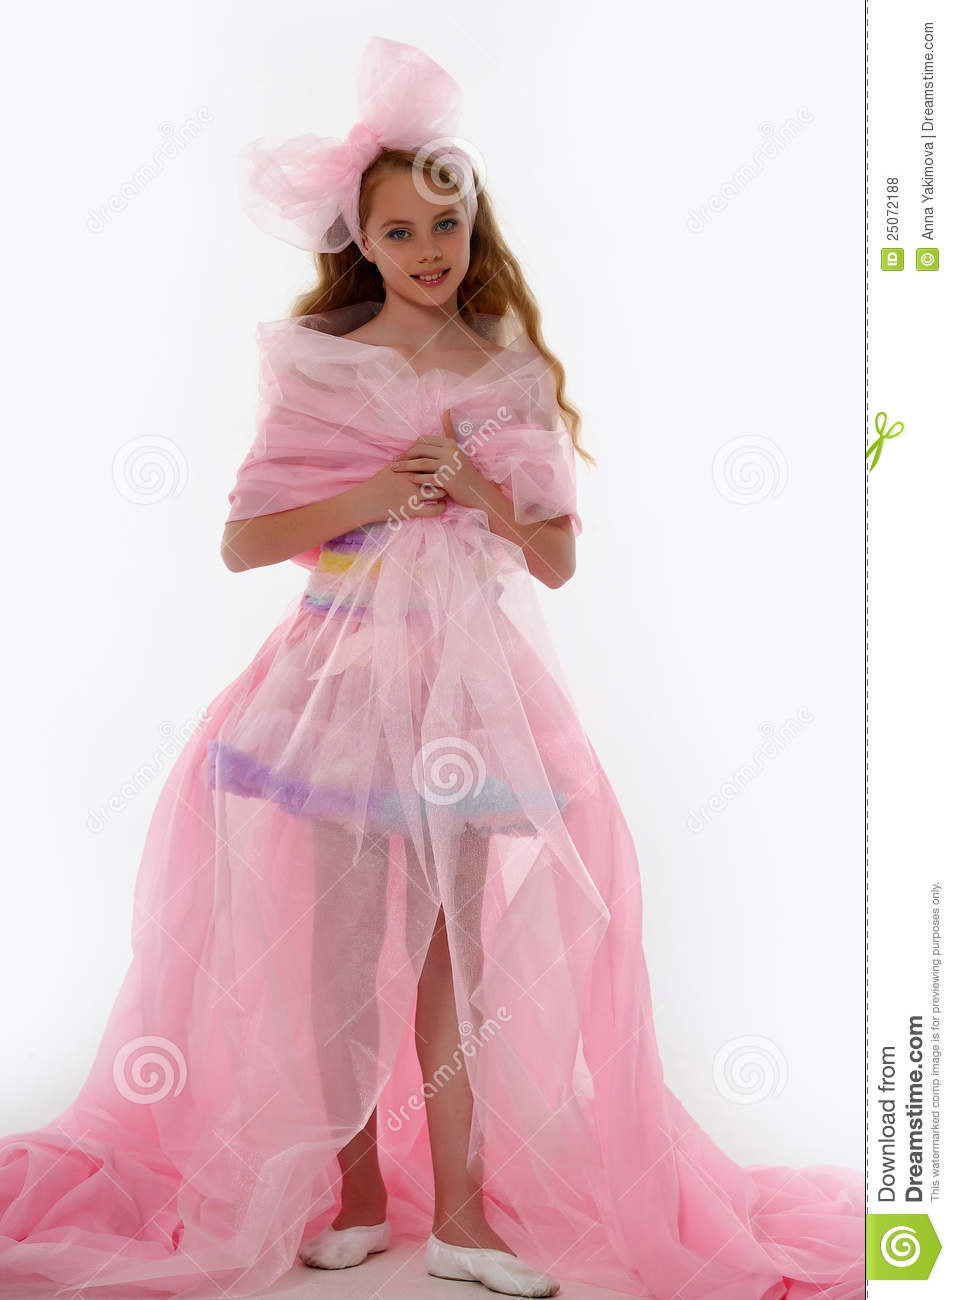 Beautiful Little Girl In Princess Dress Royalty Free Stock Photos ...